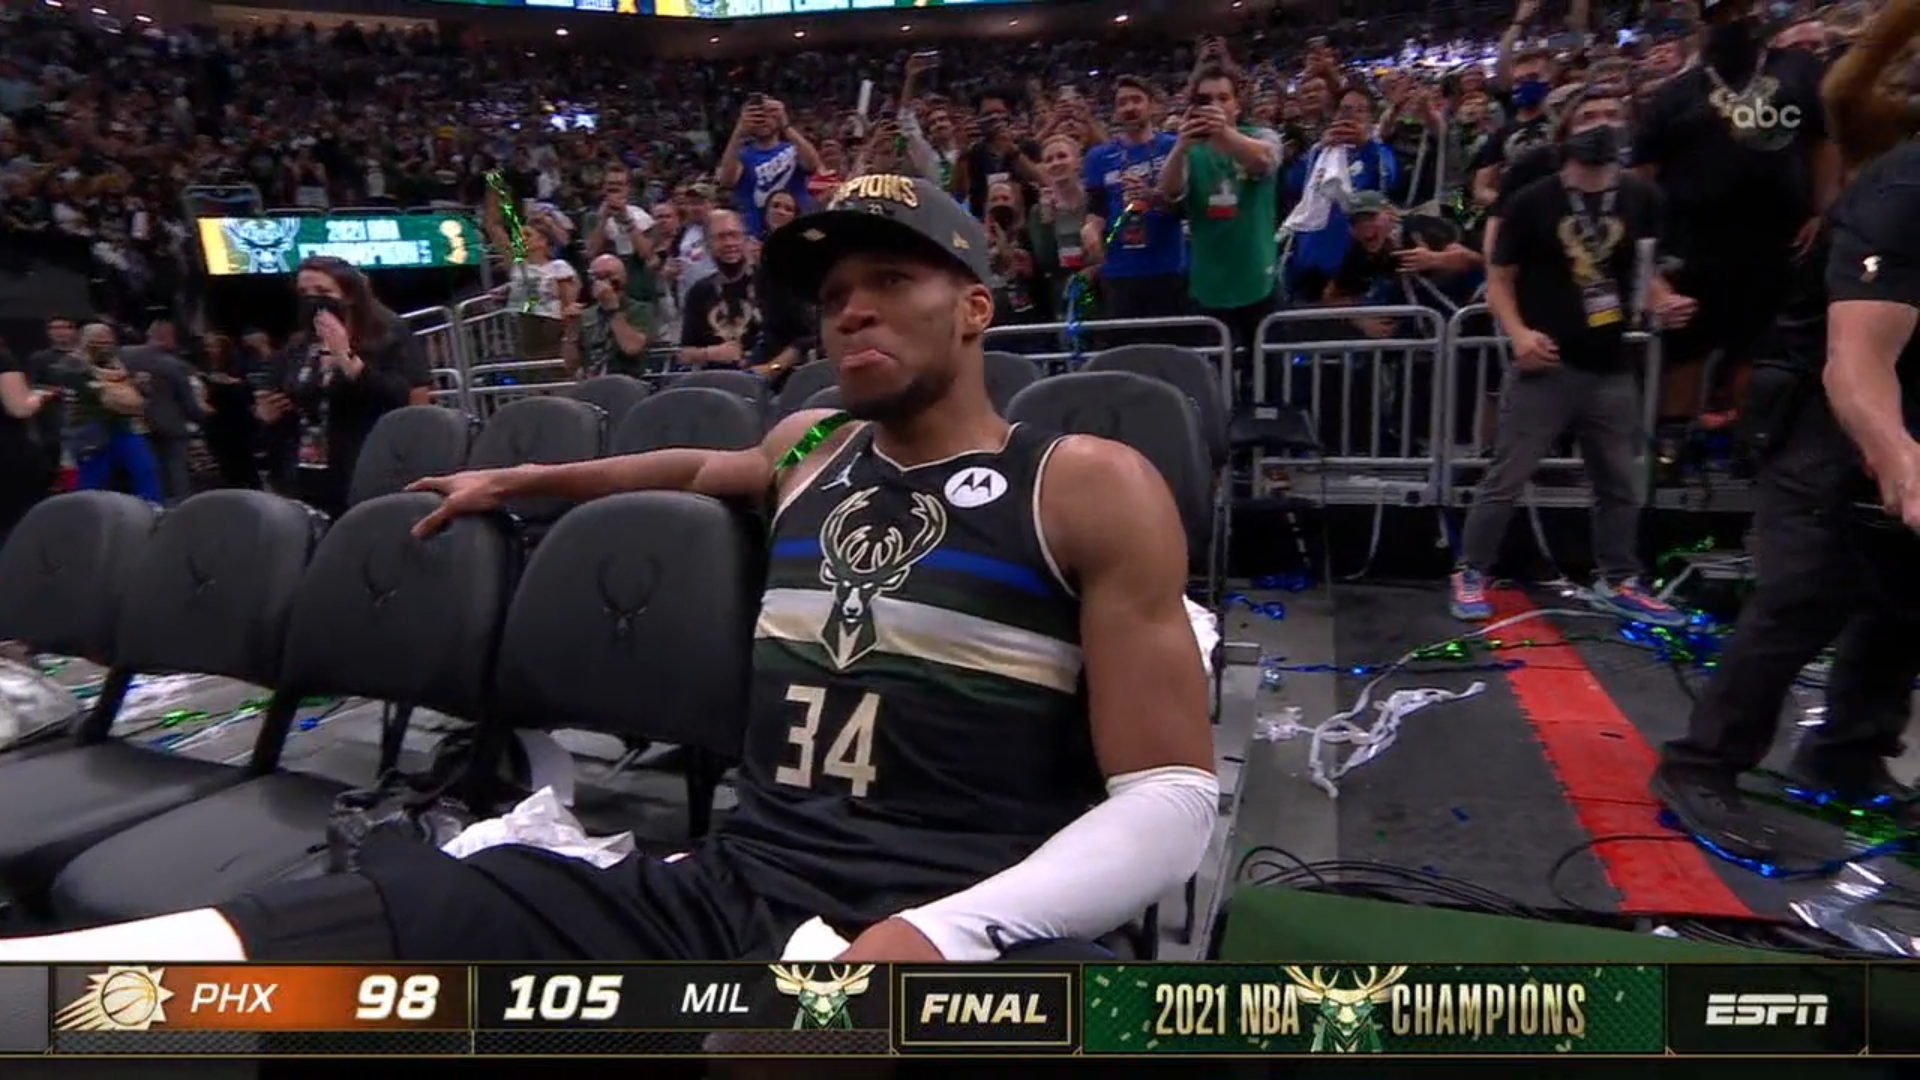 Giannis Antetokounmpo and the Milwaukee Bucks are NBA champions. But is Giannis the deserving 2021 Playoff MVP?